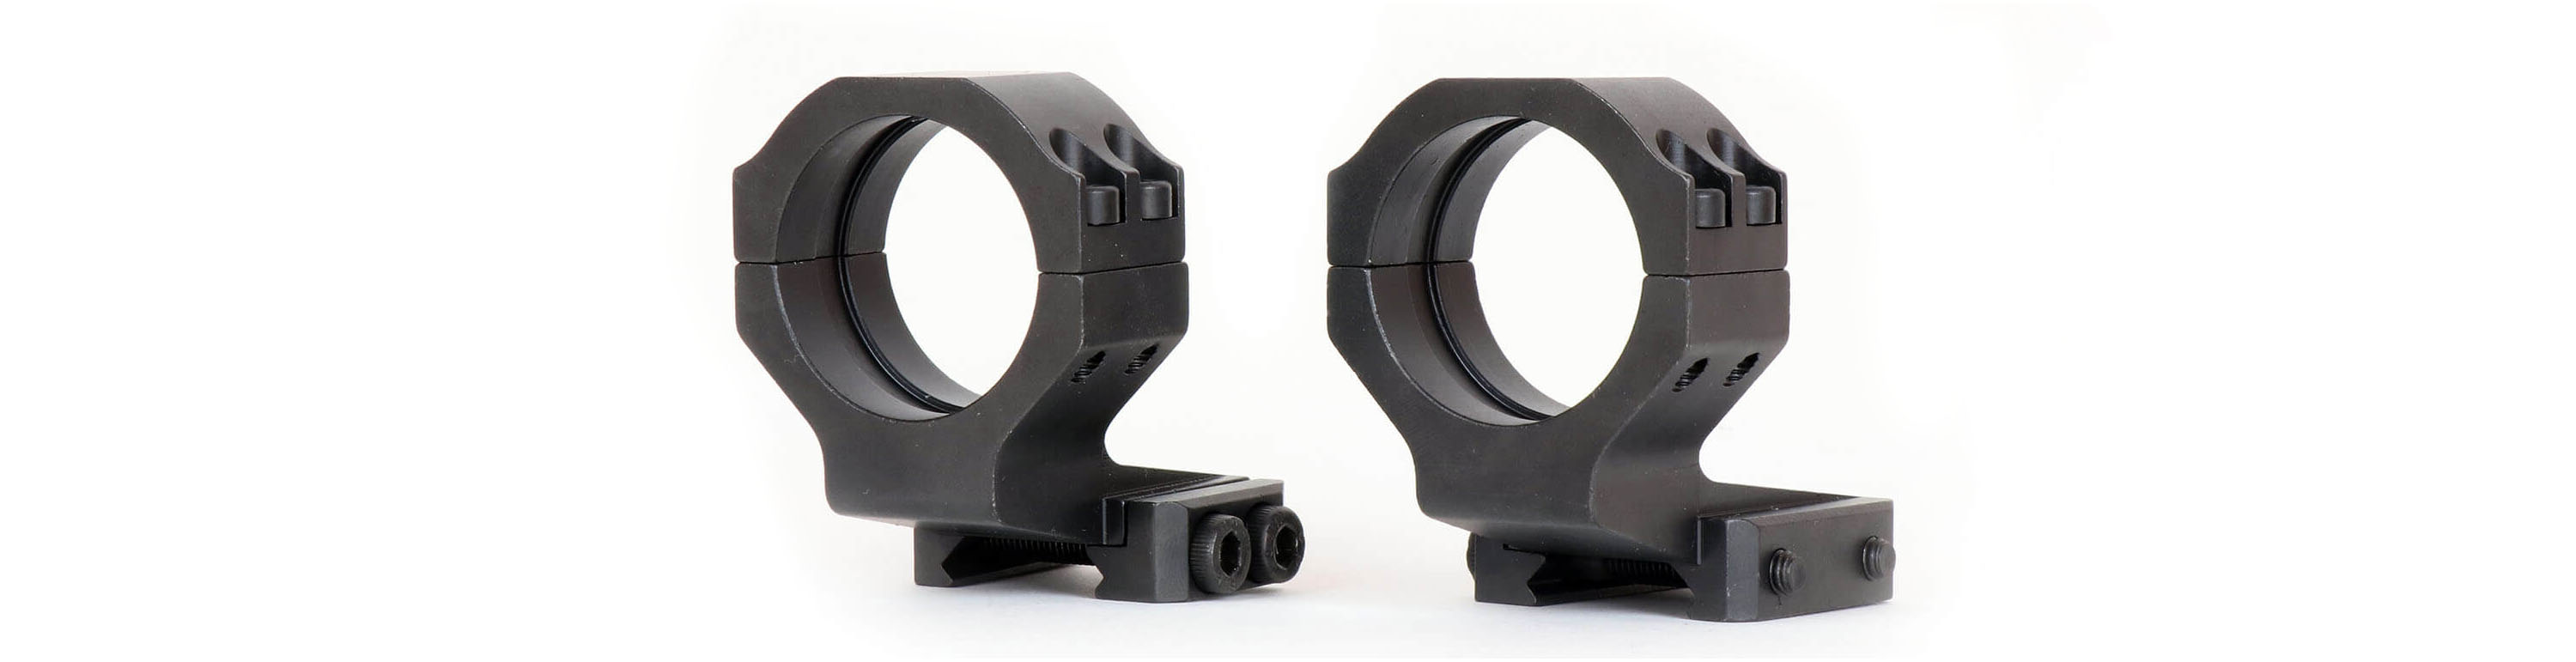 OVIS SCOPE MOUNT